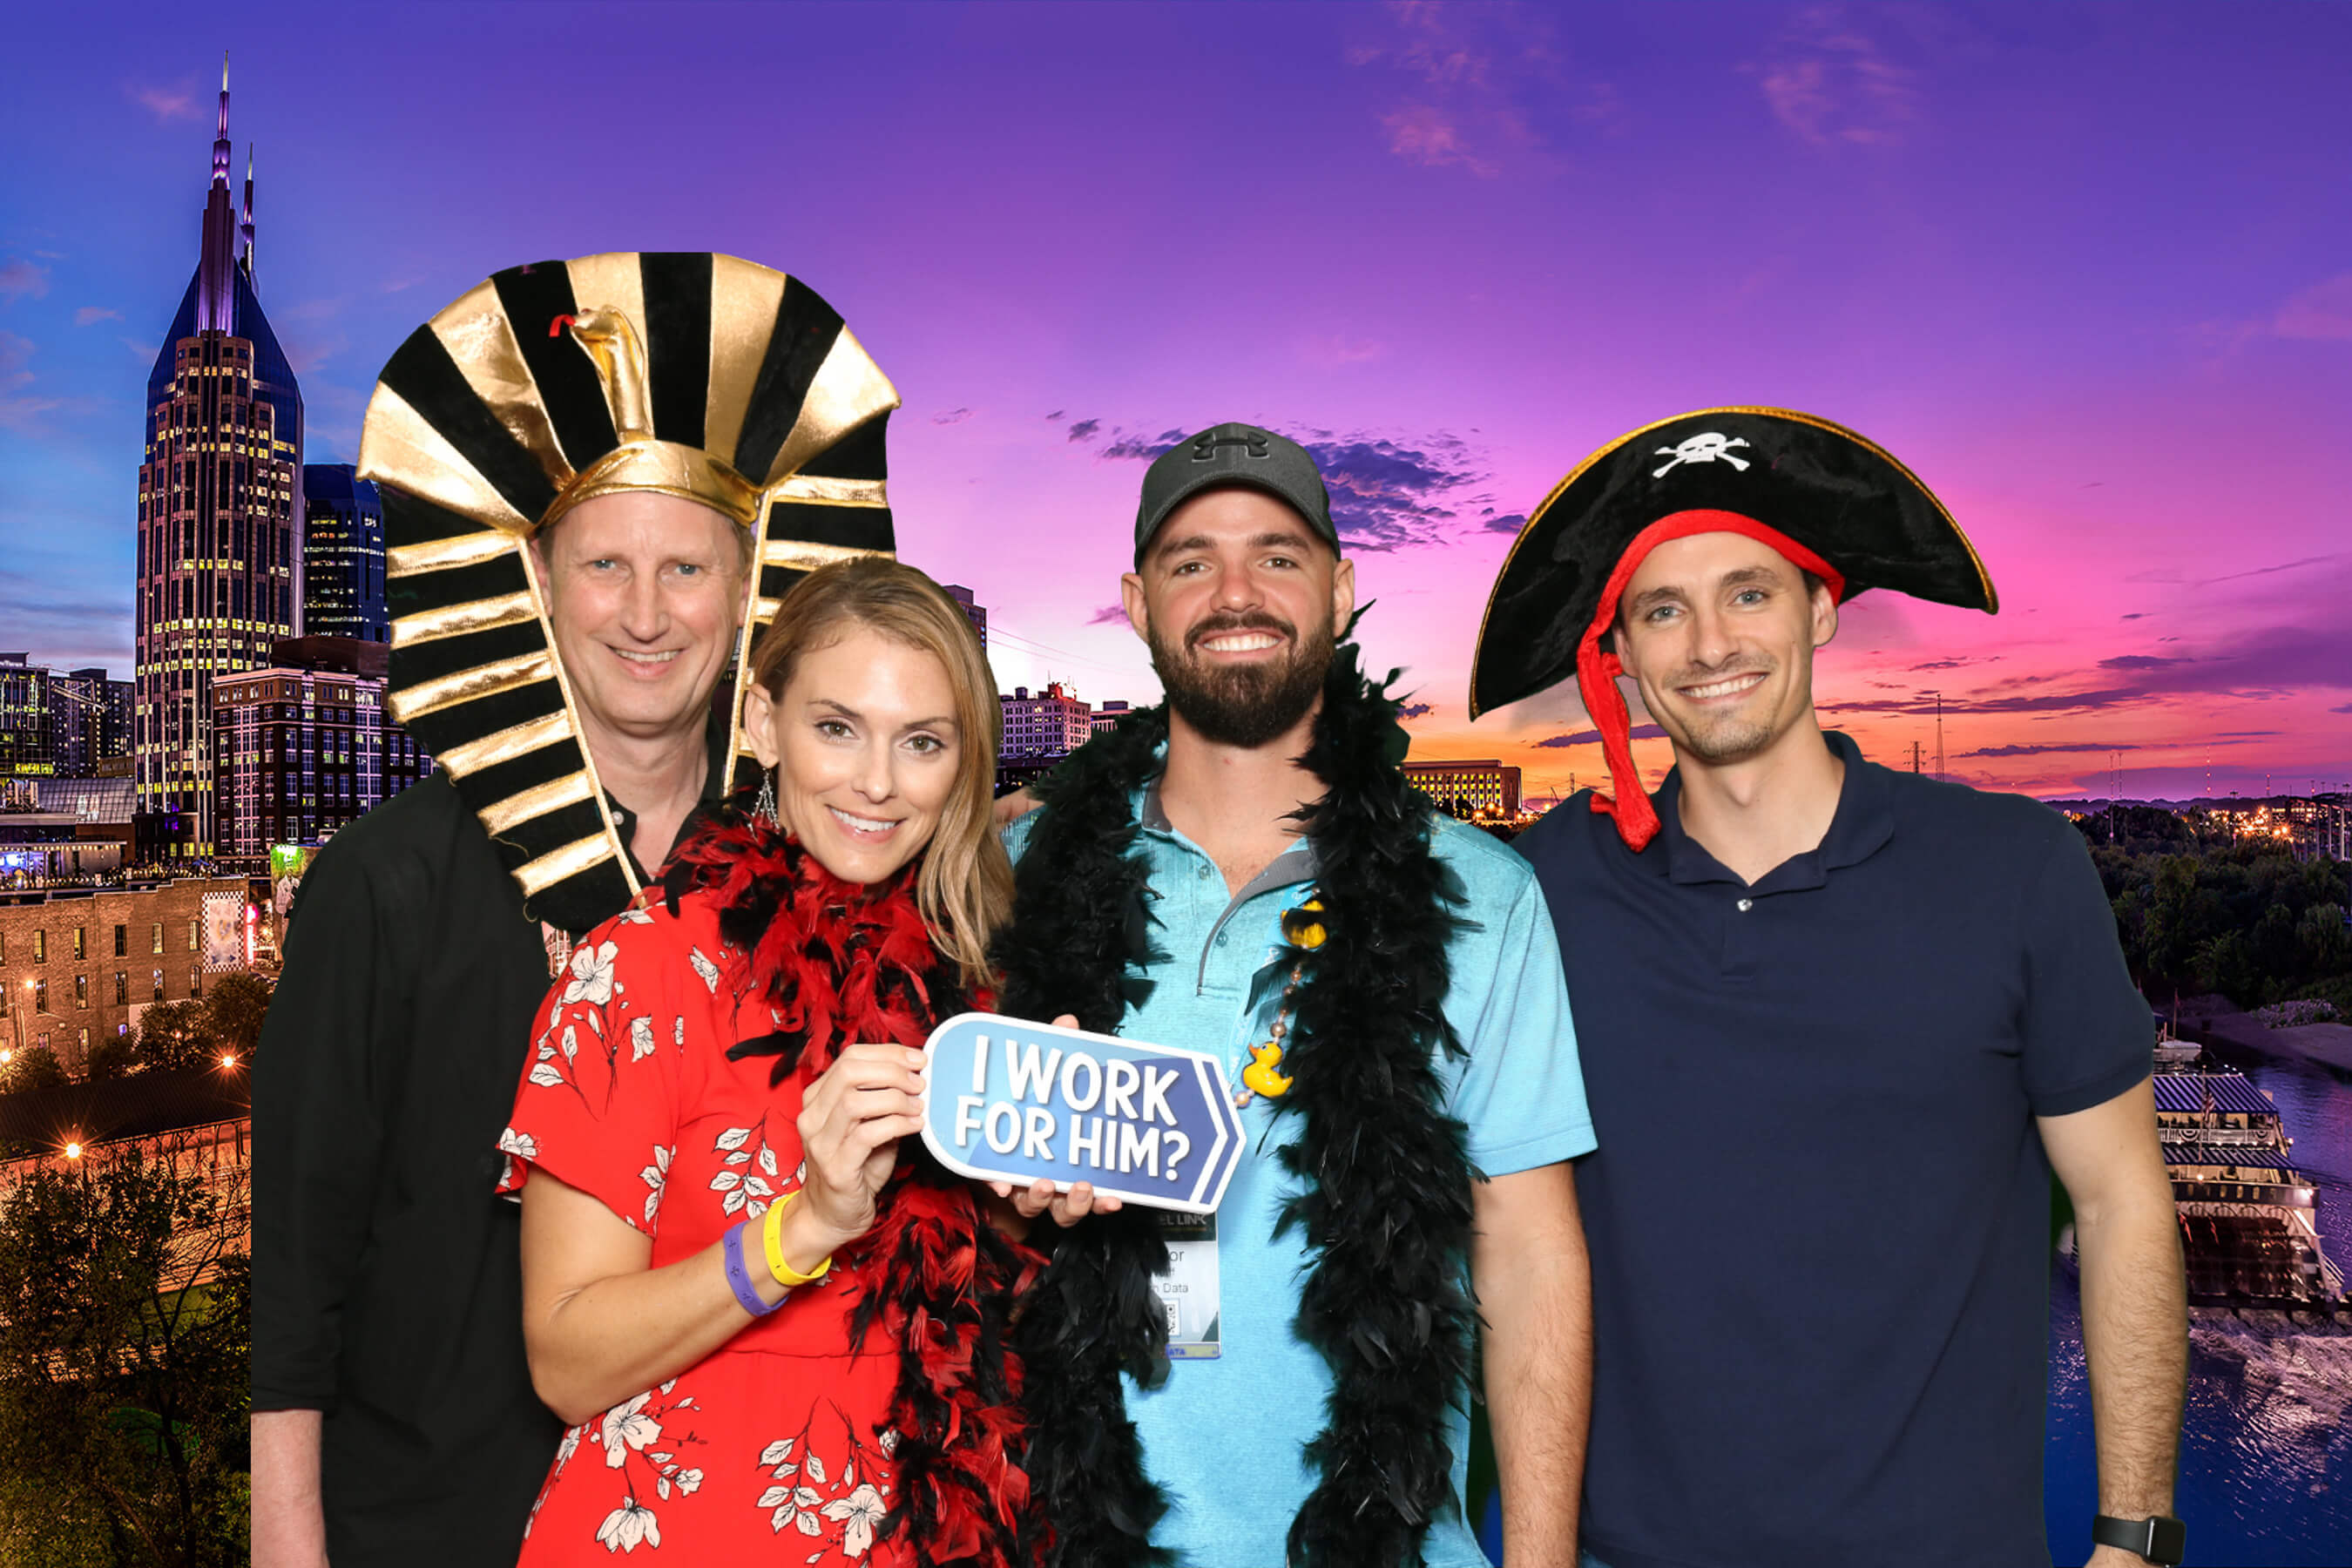 Coworkers celebrating their corporate event with a photo booth